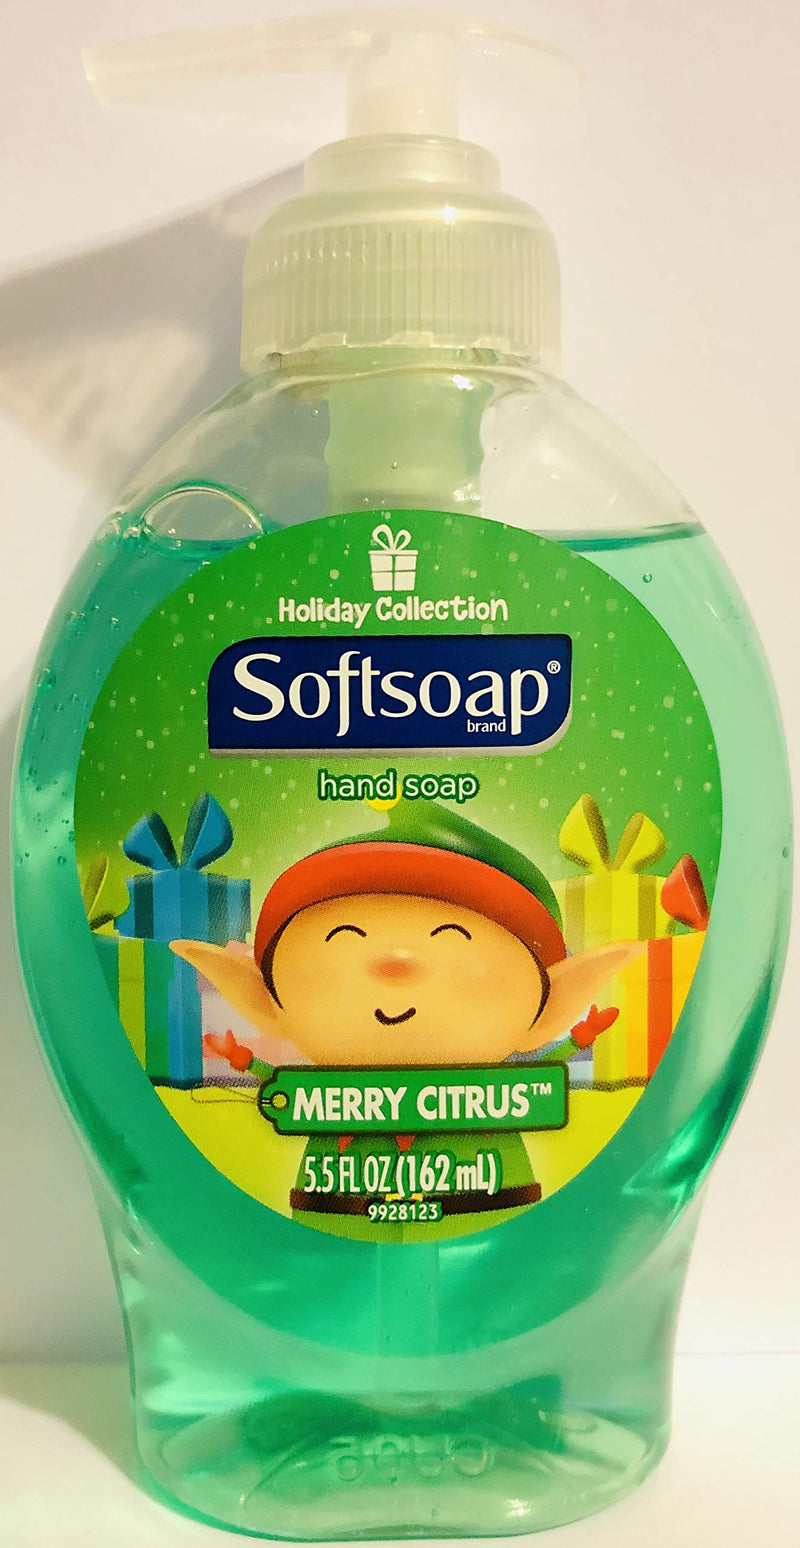 Softsoap Hand Soap - Holiday Collection Net Wt. 5.5 FL OZ (162 mL) each Pack of 4 Bottles